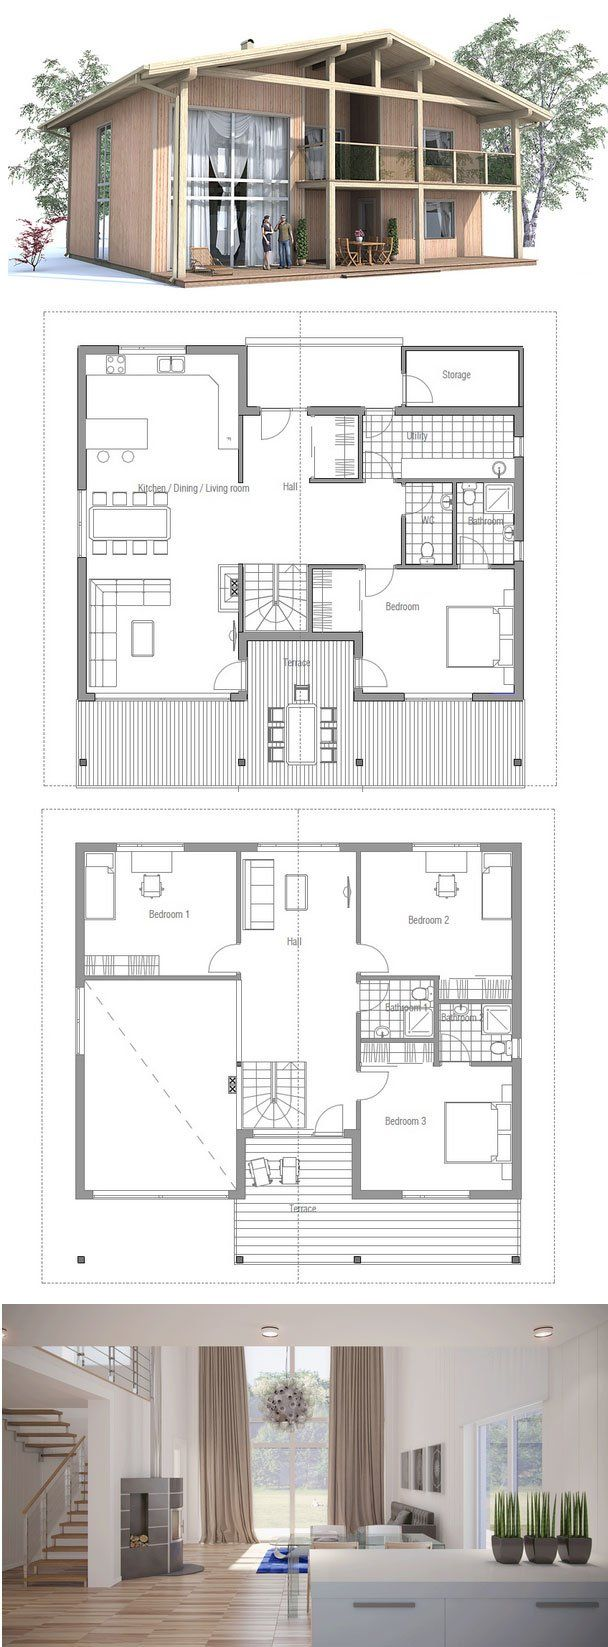 80 best famous floorplans images on pinterest floor plans modern house plan with four bedrooms suits well to lot with big back yard or